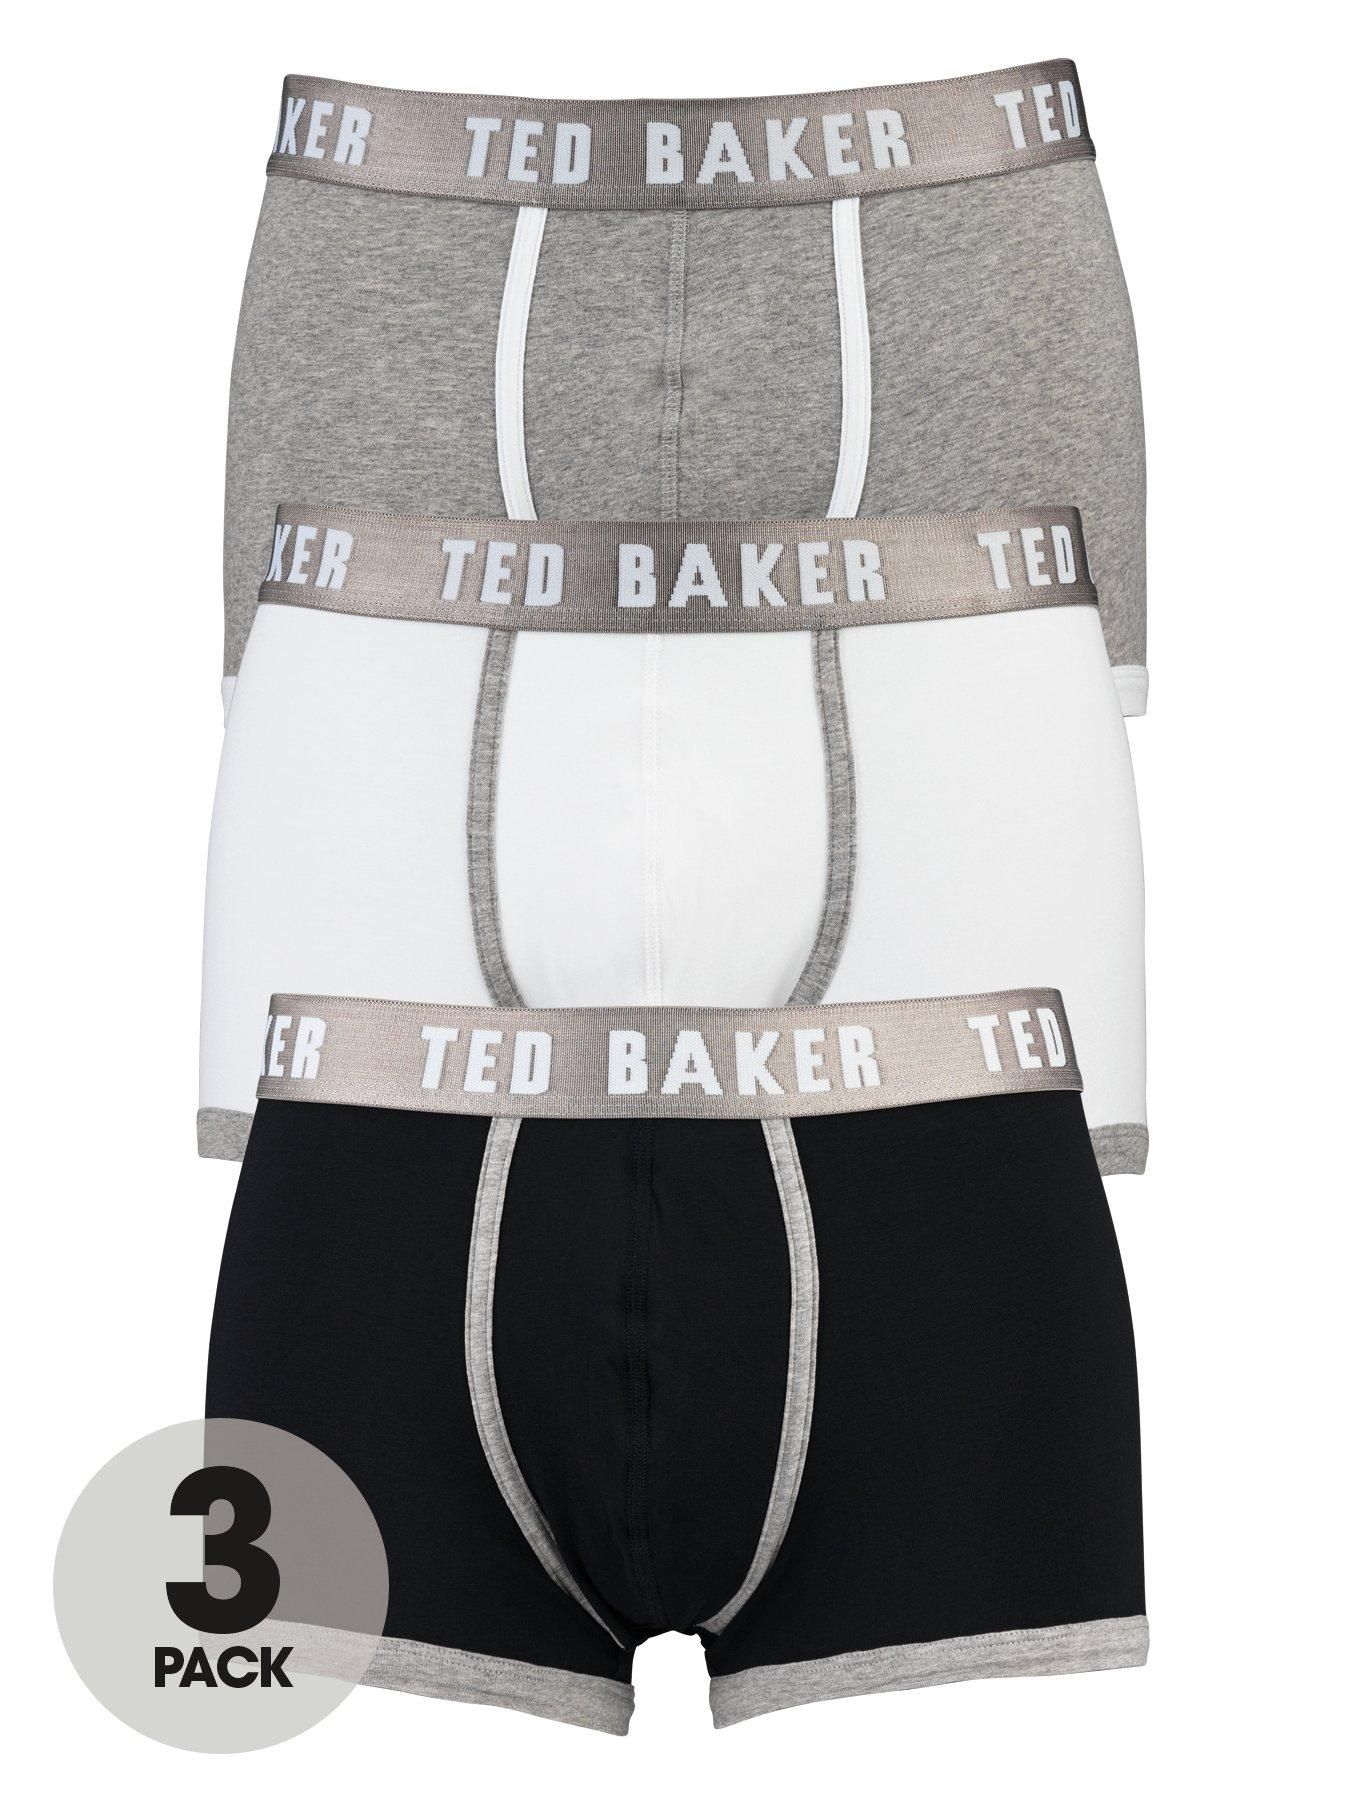 Ted Baker Mens Trunks (3 Pack)